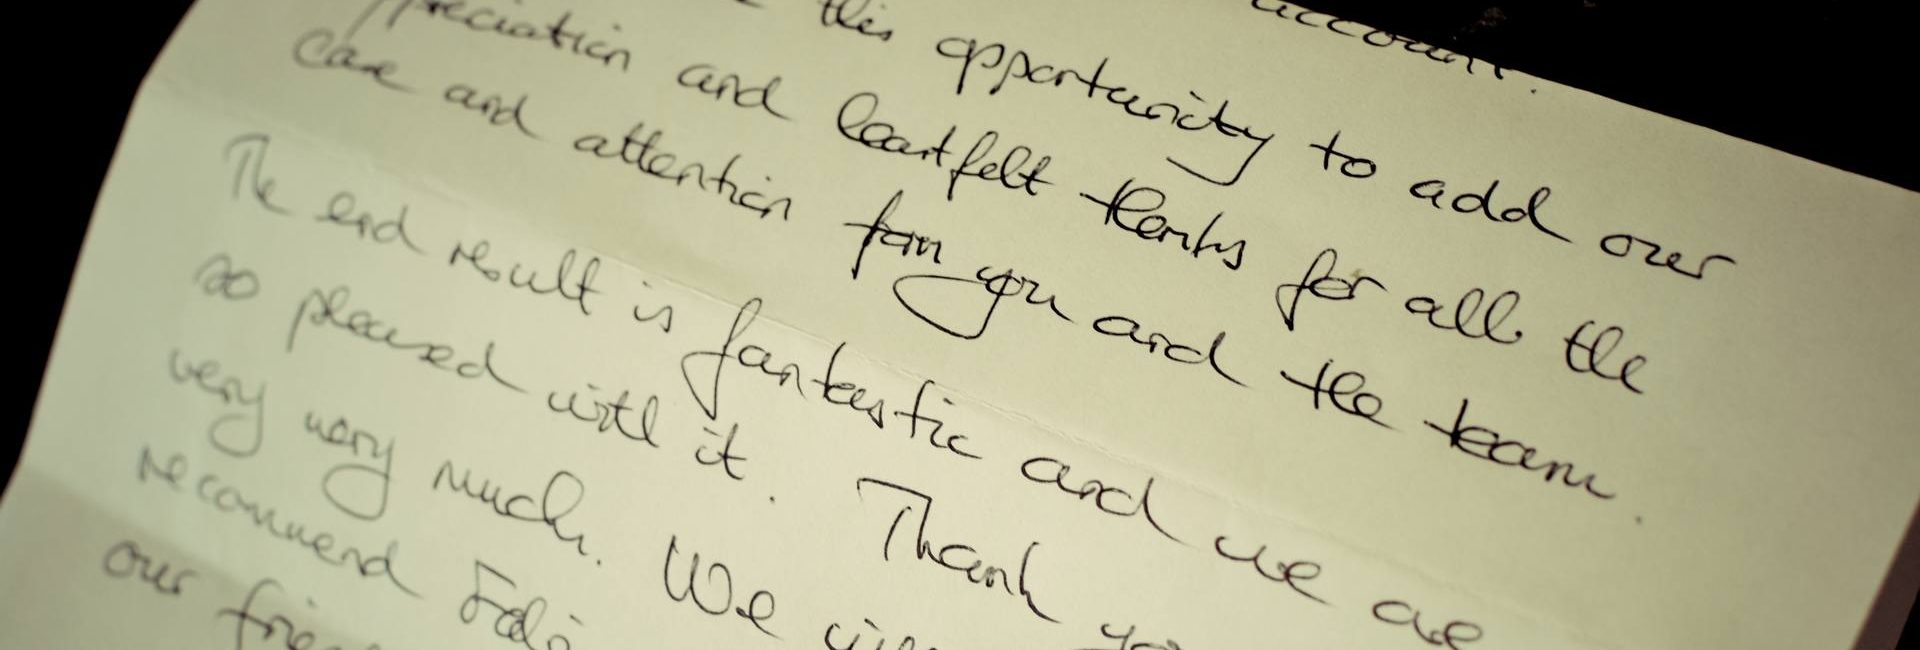 Photo of letter from satified customer - testimonials for Fabric Gallery and Interiors of Dunnington, York